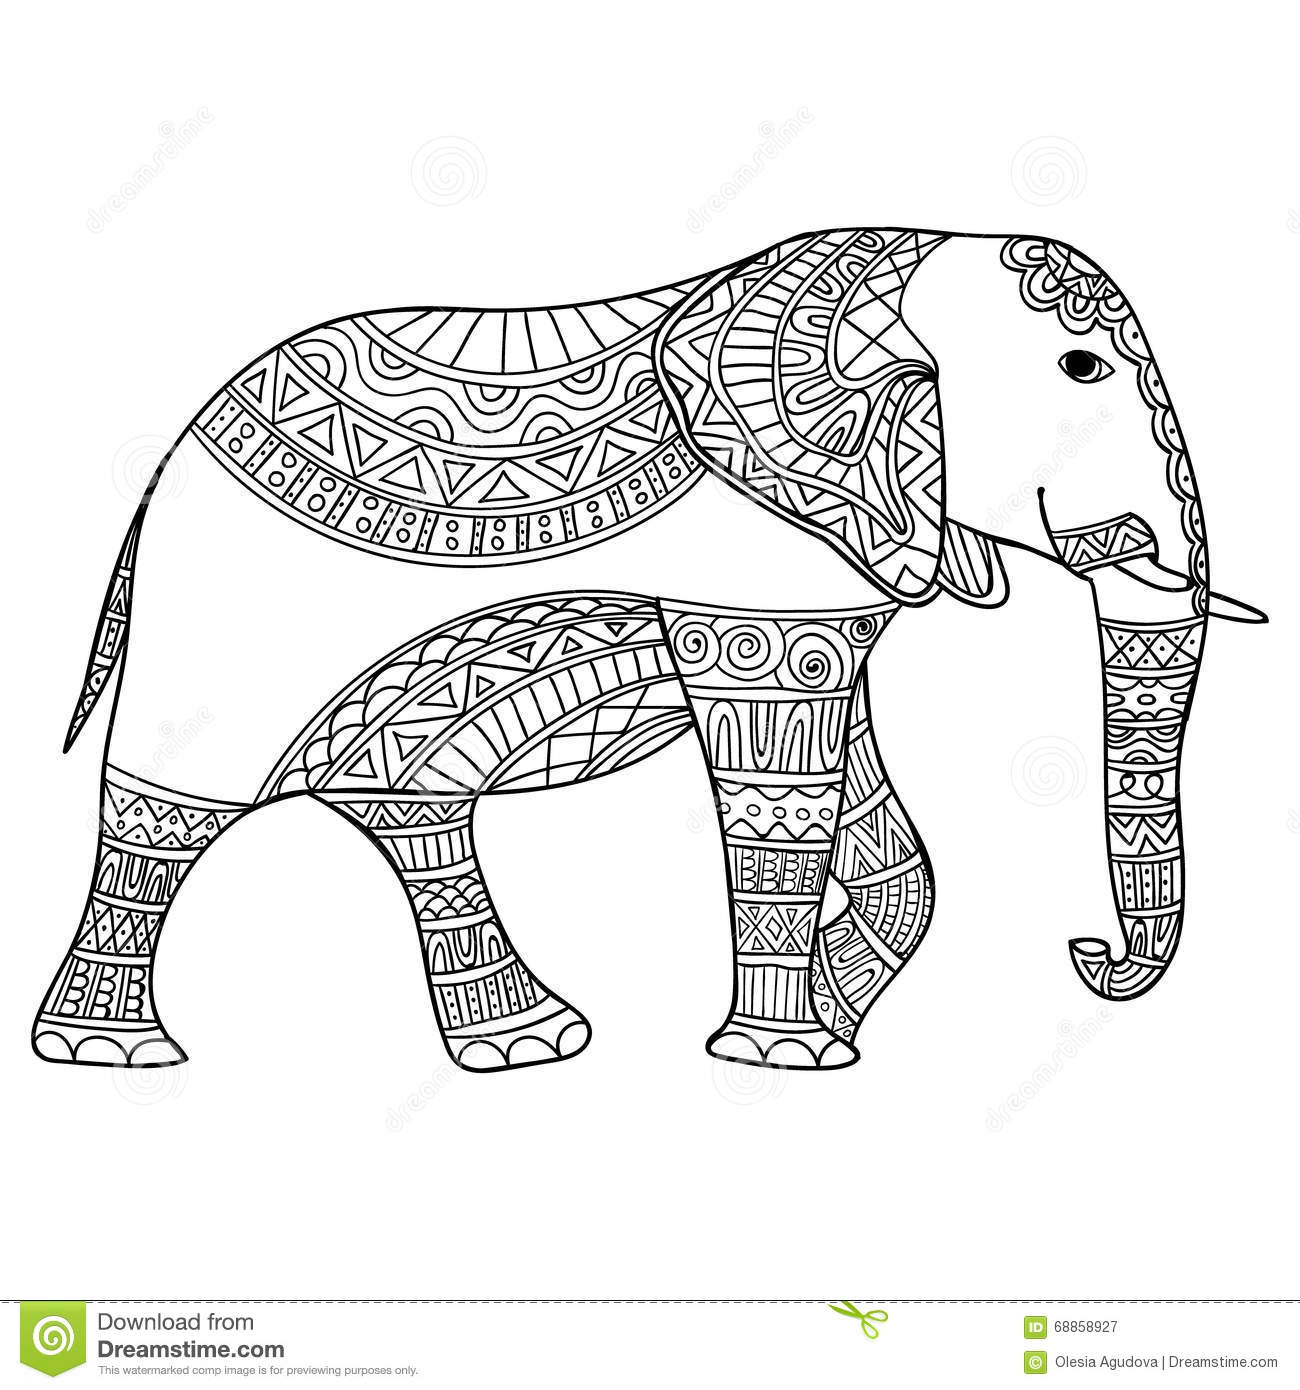 Elephant Black And White Doodle Print With Ethnic Patterns ...